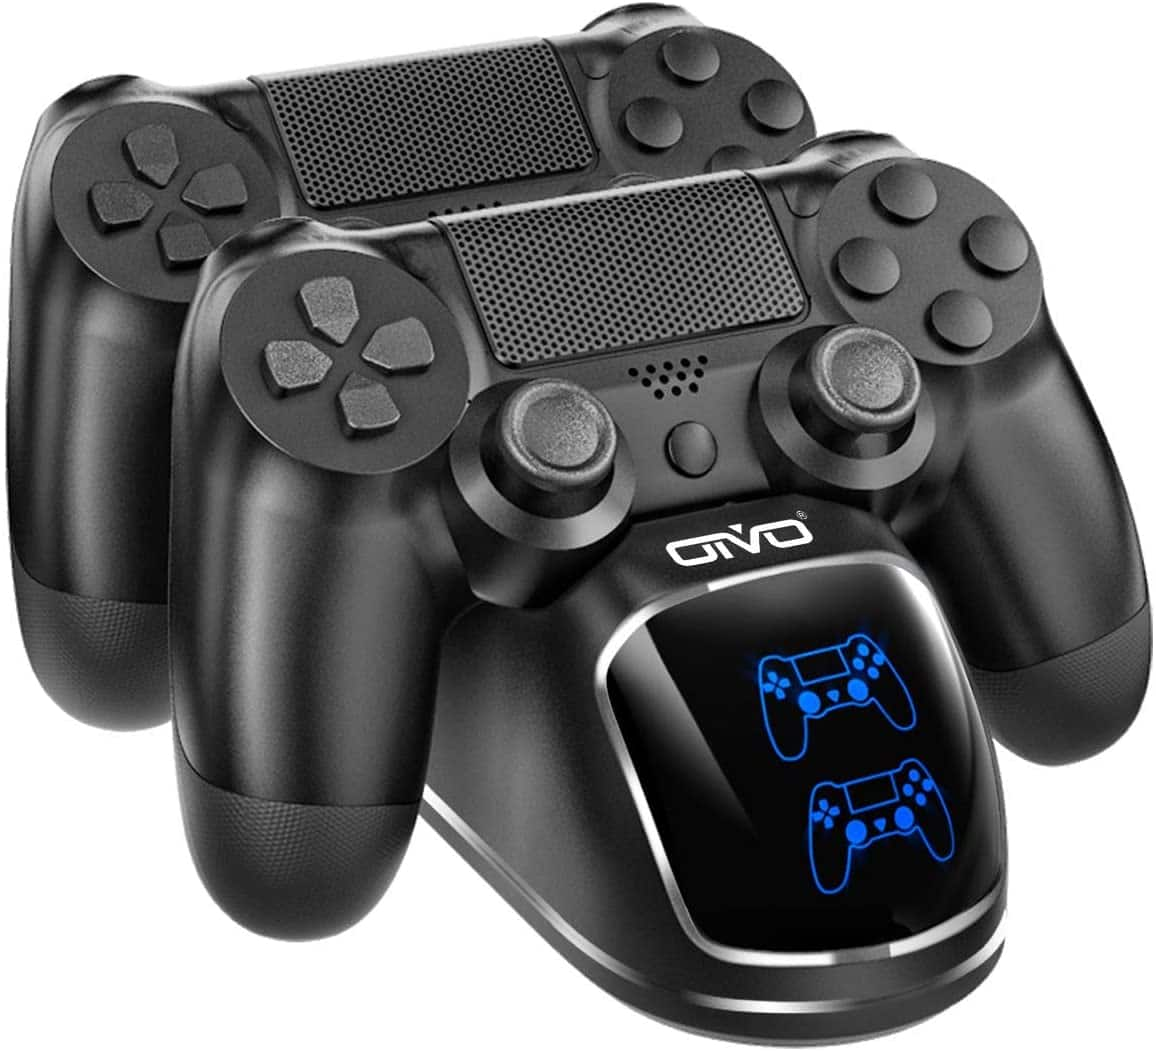 PS4 Controller Charger Dock Station, OIVO Controller Charging Dock $9.09+FS